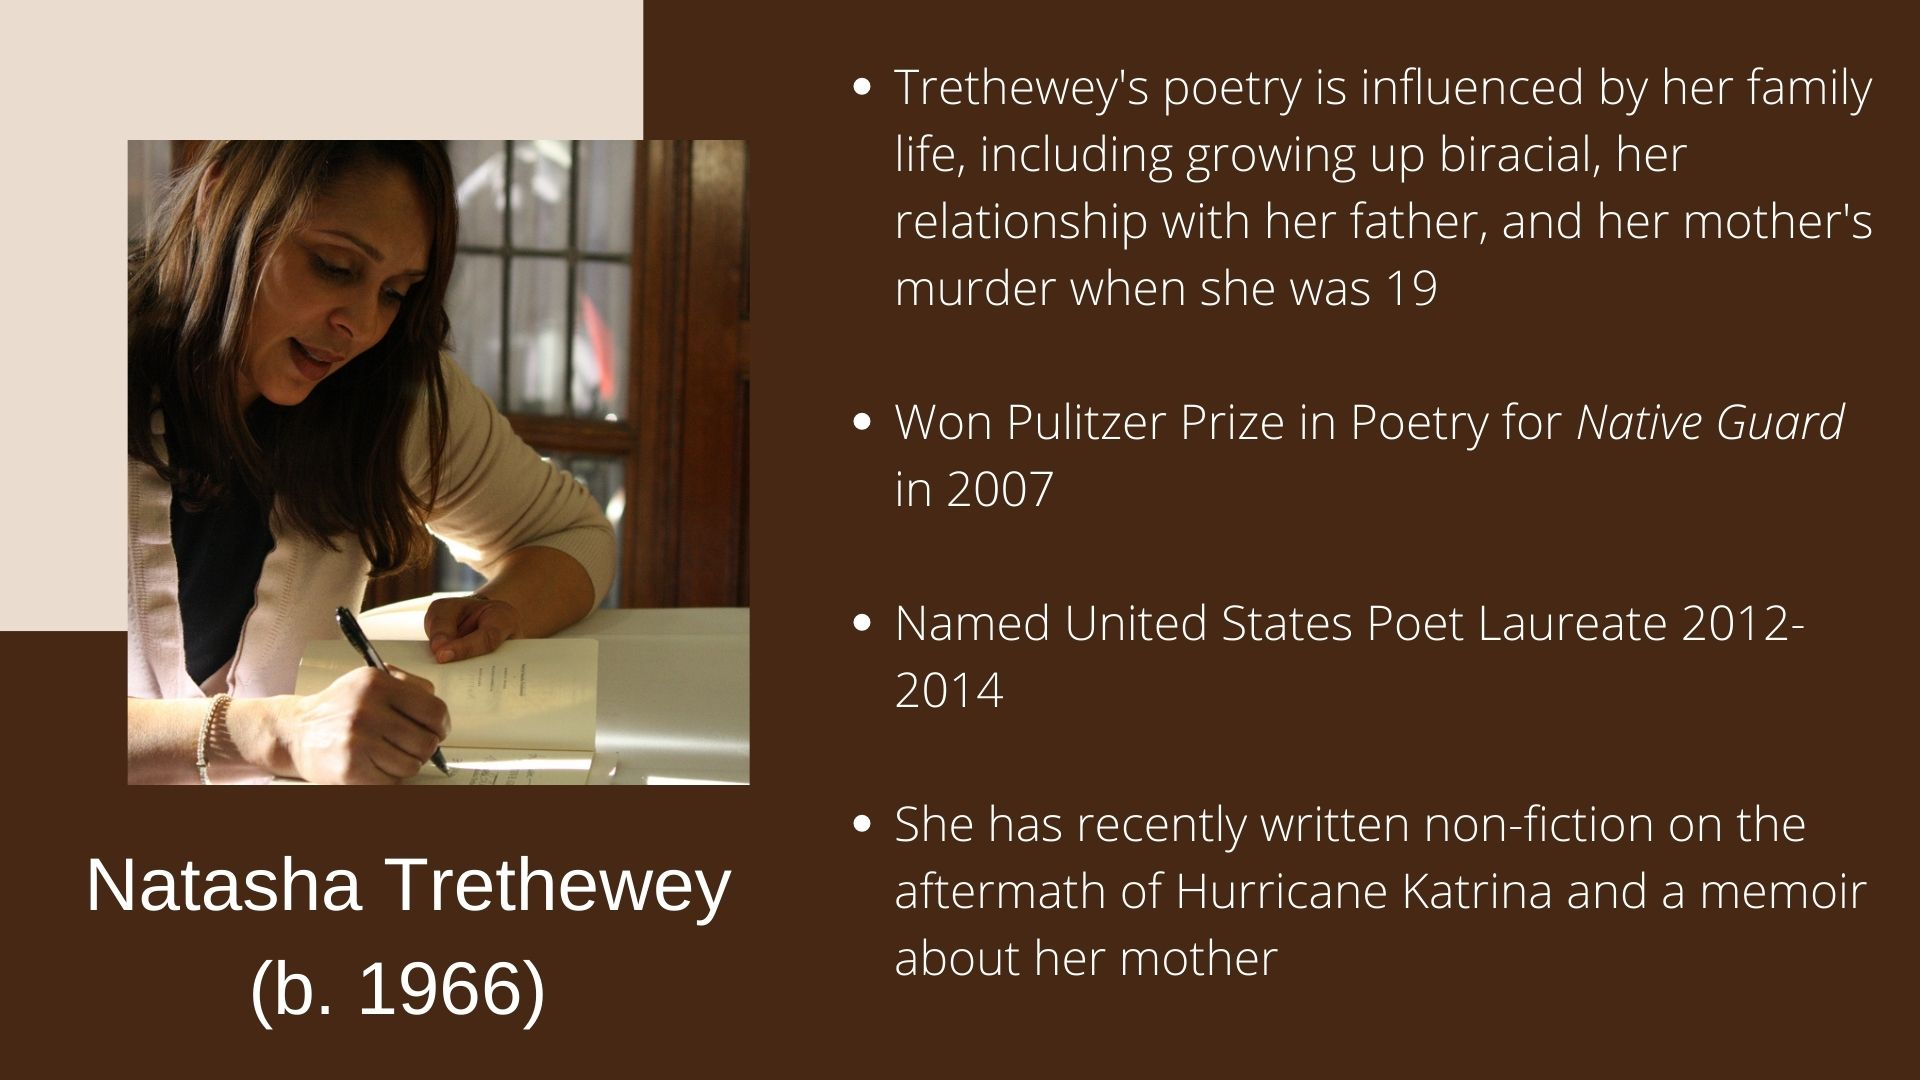 Natasha Trethewey (b. 1966) Trethewey's poetry is influenced by her family life, including growing up biracial, her relationship with her father, and her mother's murder when she was 19  Won Pulitzer Prize in Poetry for Native Guard in 2007   Named United States Poet Laureate 2012-2014  She has recently written non-fiction on the aftermath of Hurricane Katrina and a memoir about her mother